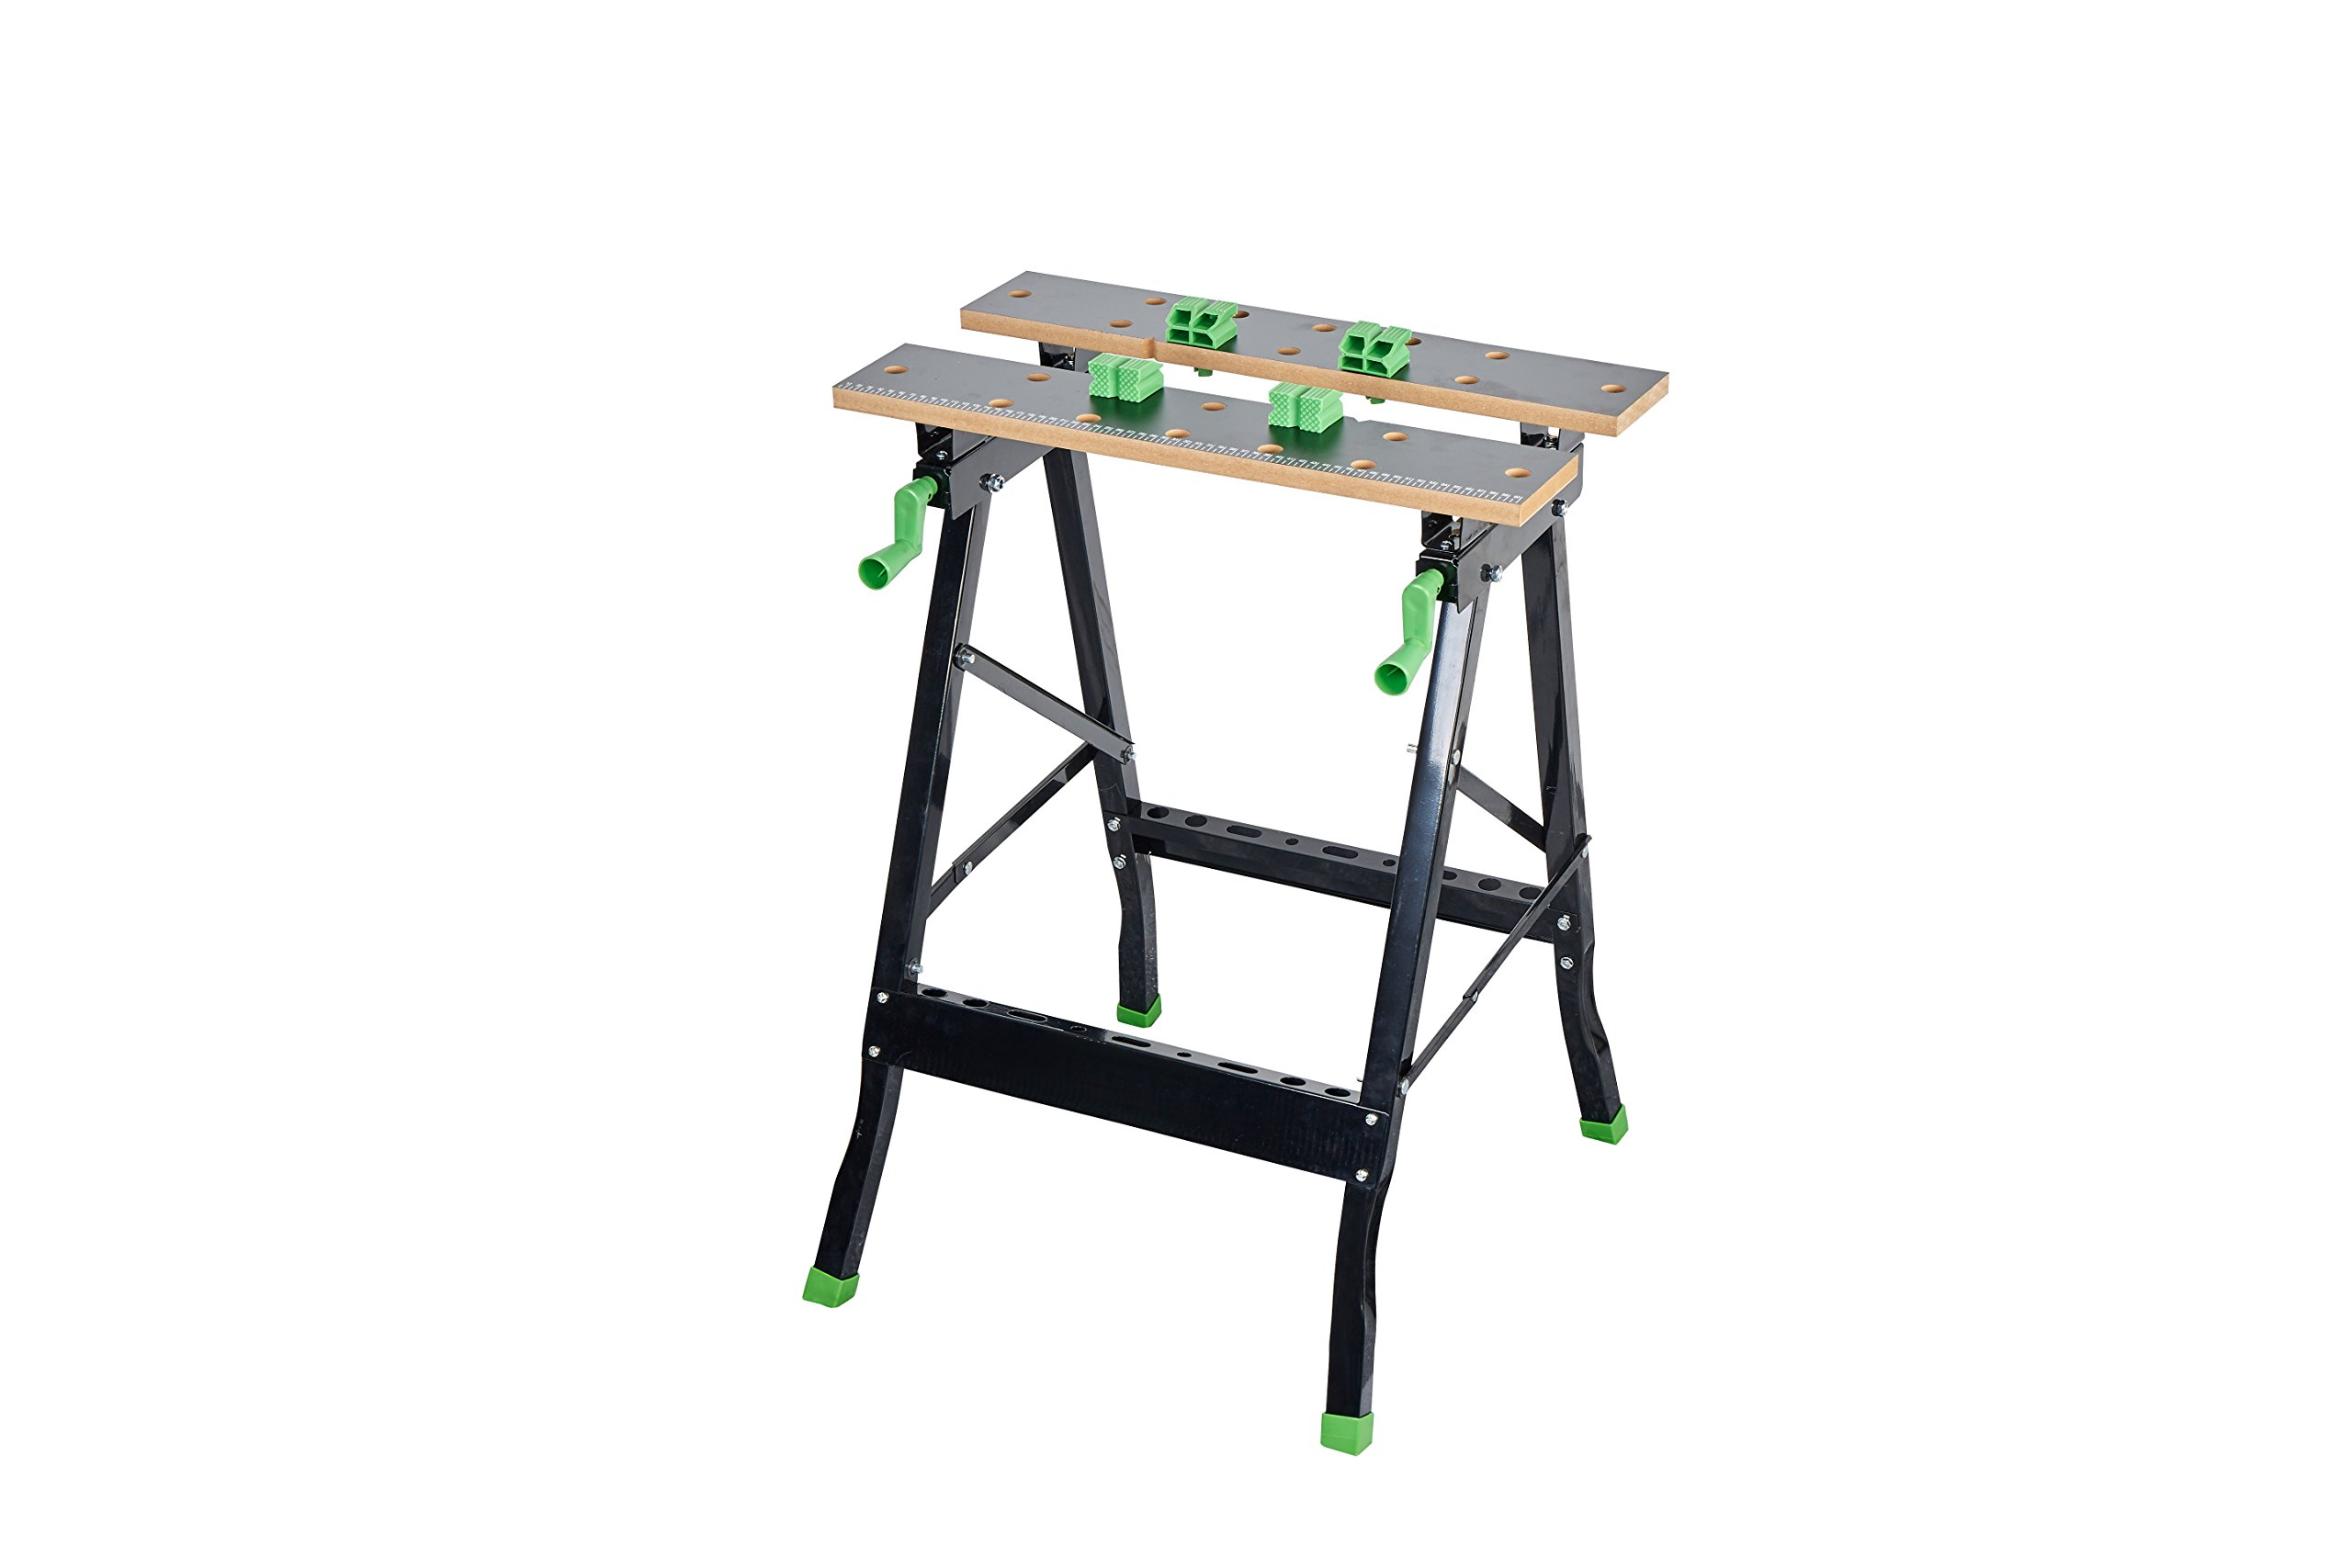 Fold Down Portable Workbench Steel Table Garage Portable Tool Workbench